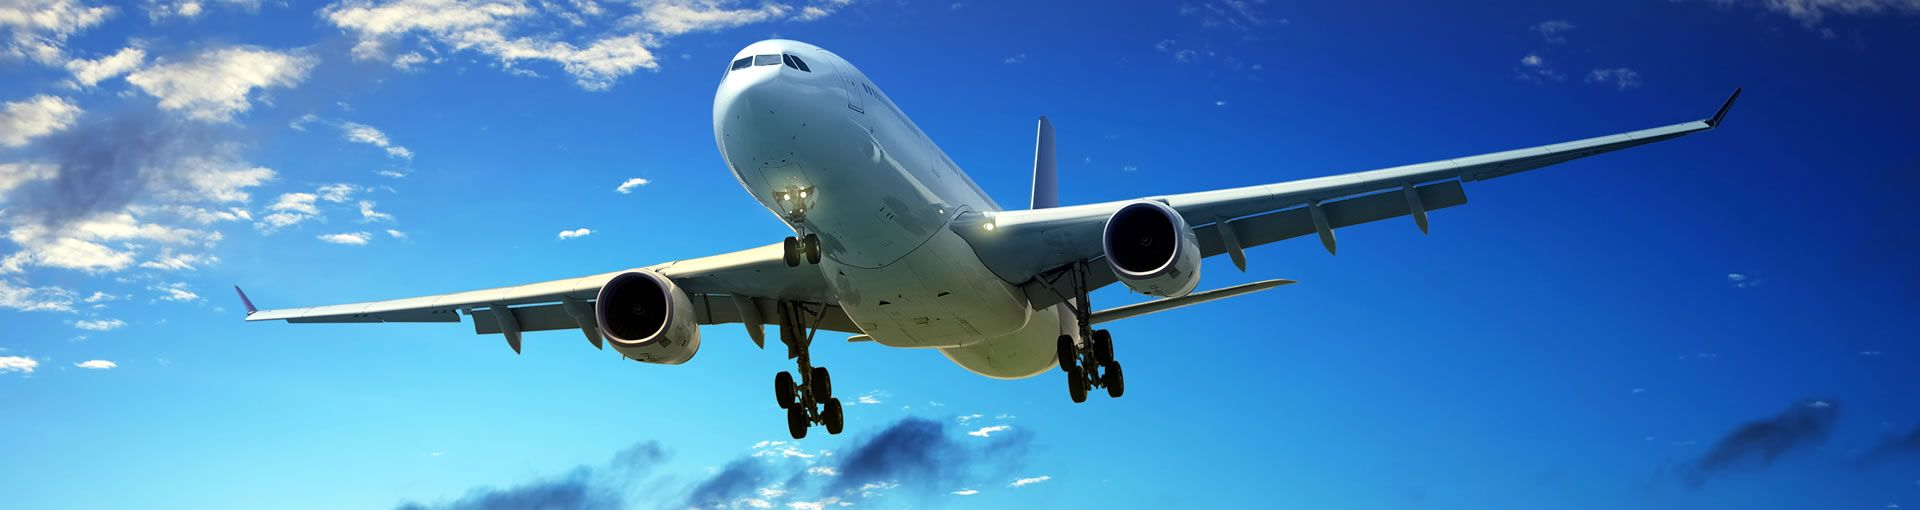 Airport Transportation Tampa Airport Transfer & Shuttle Services